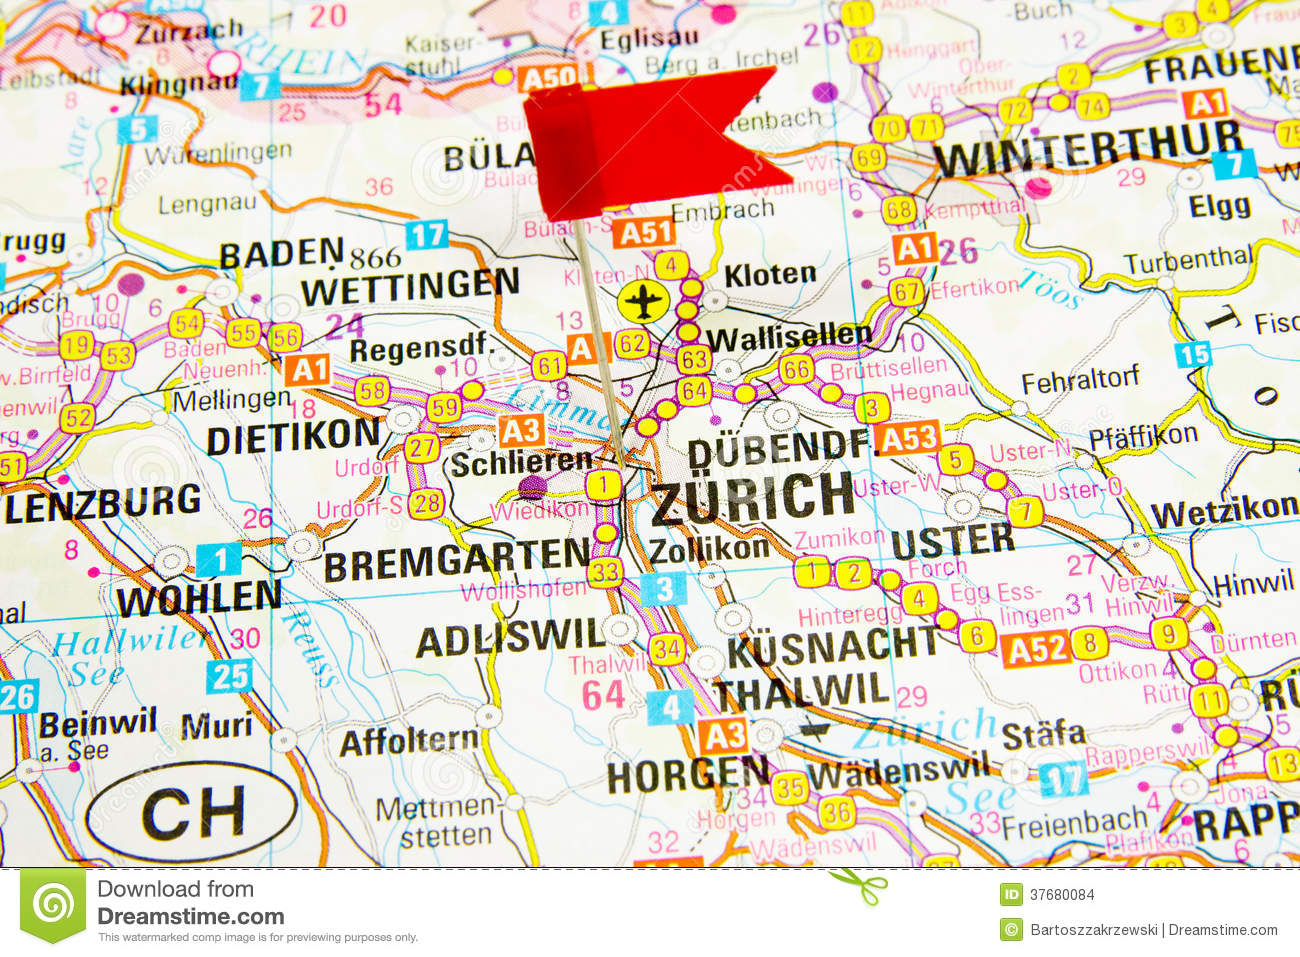 Map Of The Selected City Zurich, Switzerland Stock Photo ... Map Of Horgen Switzerland on map of st. moritz switzerland, map of jona switzerland, map of lucerne switzerland, map of brig switzerland, map of locarno switzerland, map of fribourg switzerland, map of davos switzerland, map of zermatt switzerland, map of zug switzerland, map of lake zurich switzerland, map of sion switzerland, map of altdorf switzerland, map of interlaken switzerland, map of nyon switzerland, map of buchs switzerland, map of engelberg switzerland, map of bellinzona switzerland, map of einsiedeln switzerland, map of glarus switzerland, map of langenthal switzerland,